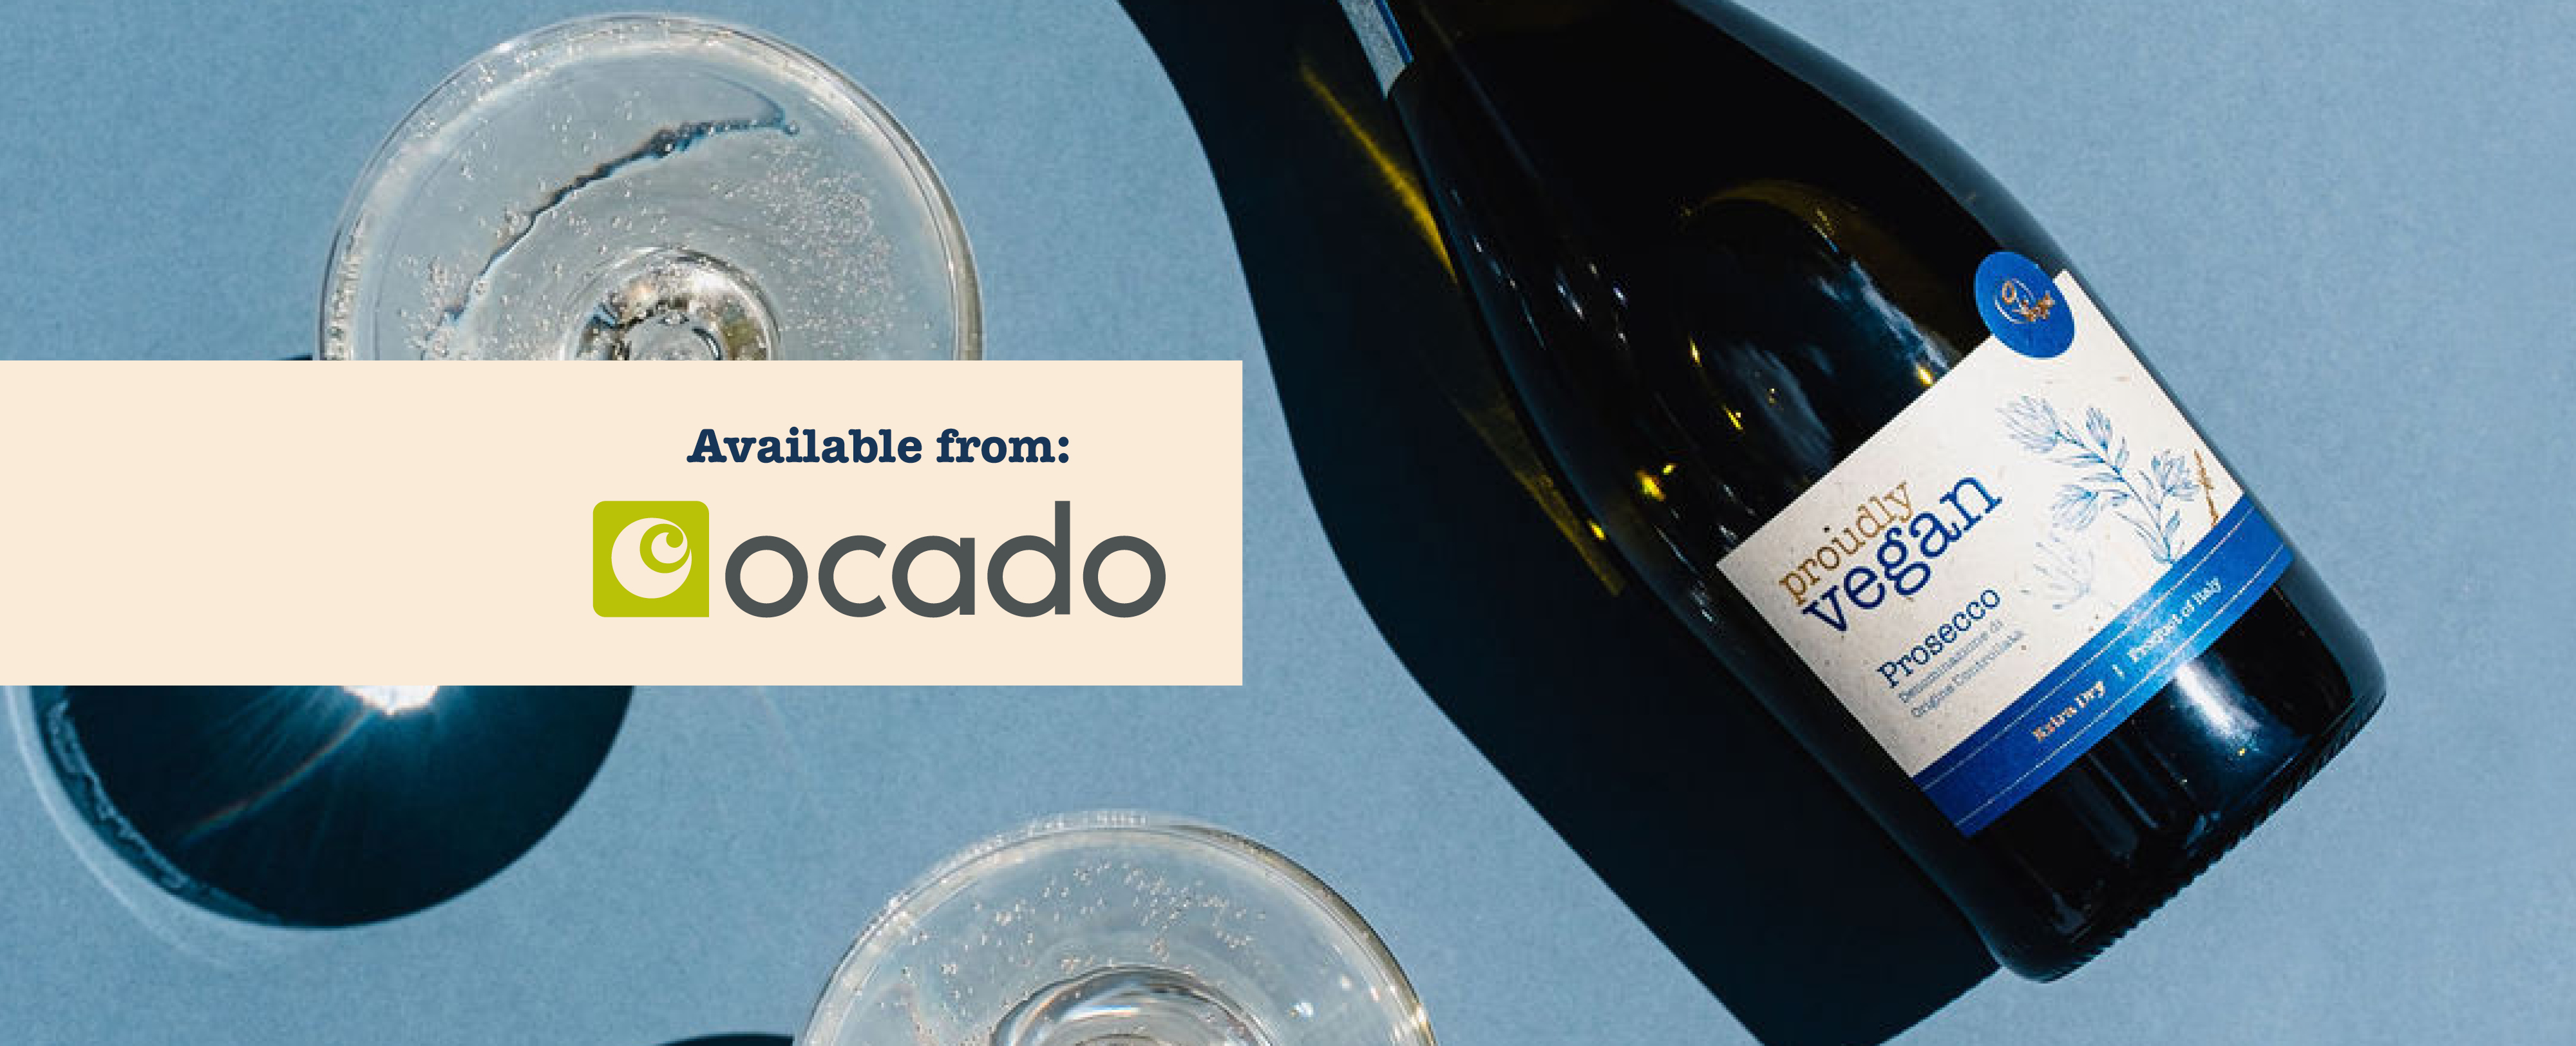 Proudly Vegan Prosecco available on Ocado